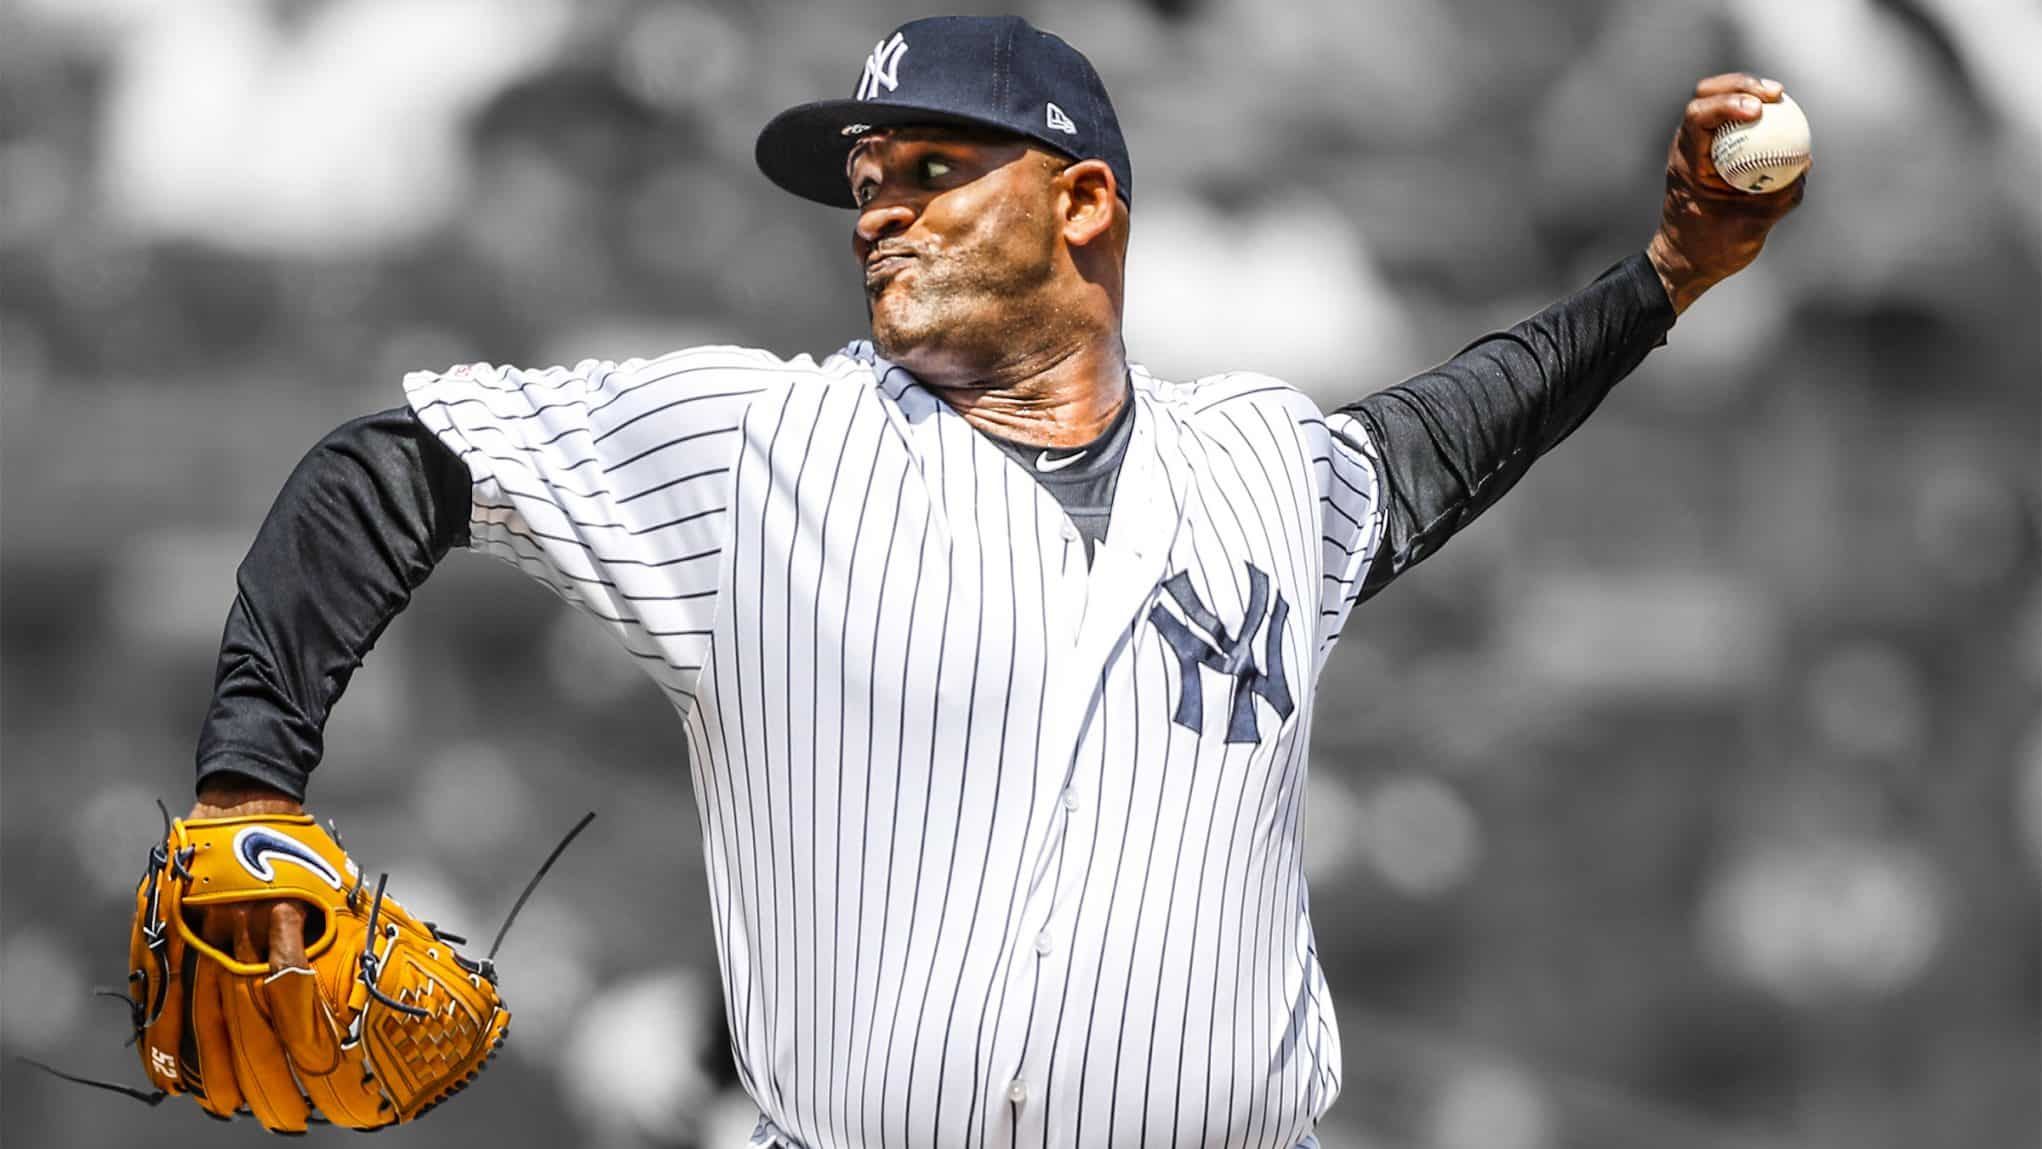 eb0ed6f04e6 CC Sabathia lifts New York Yankees en route to 4-0 win (Highlights)